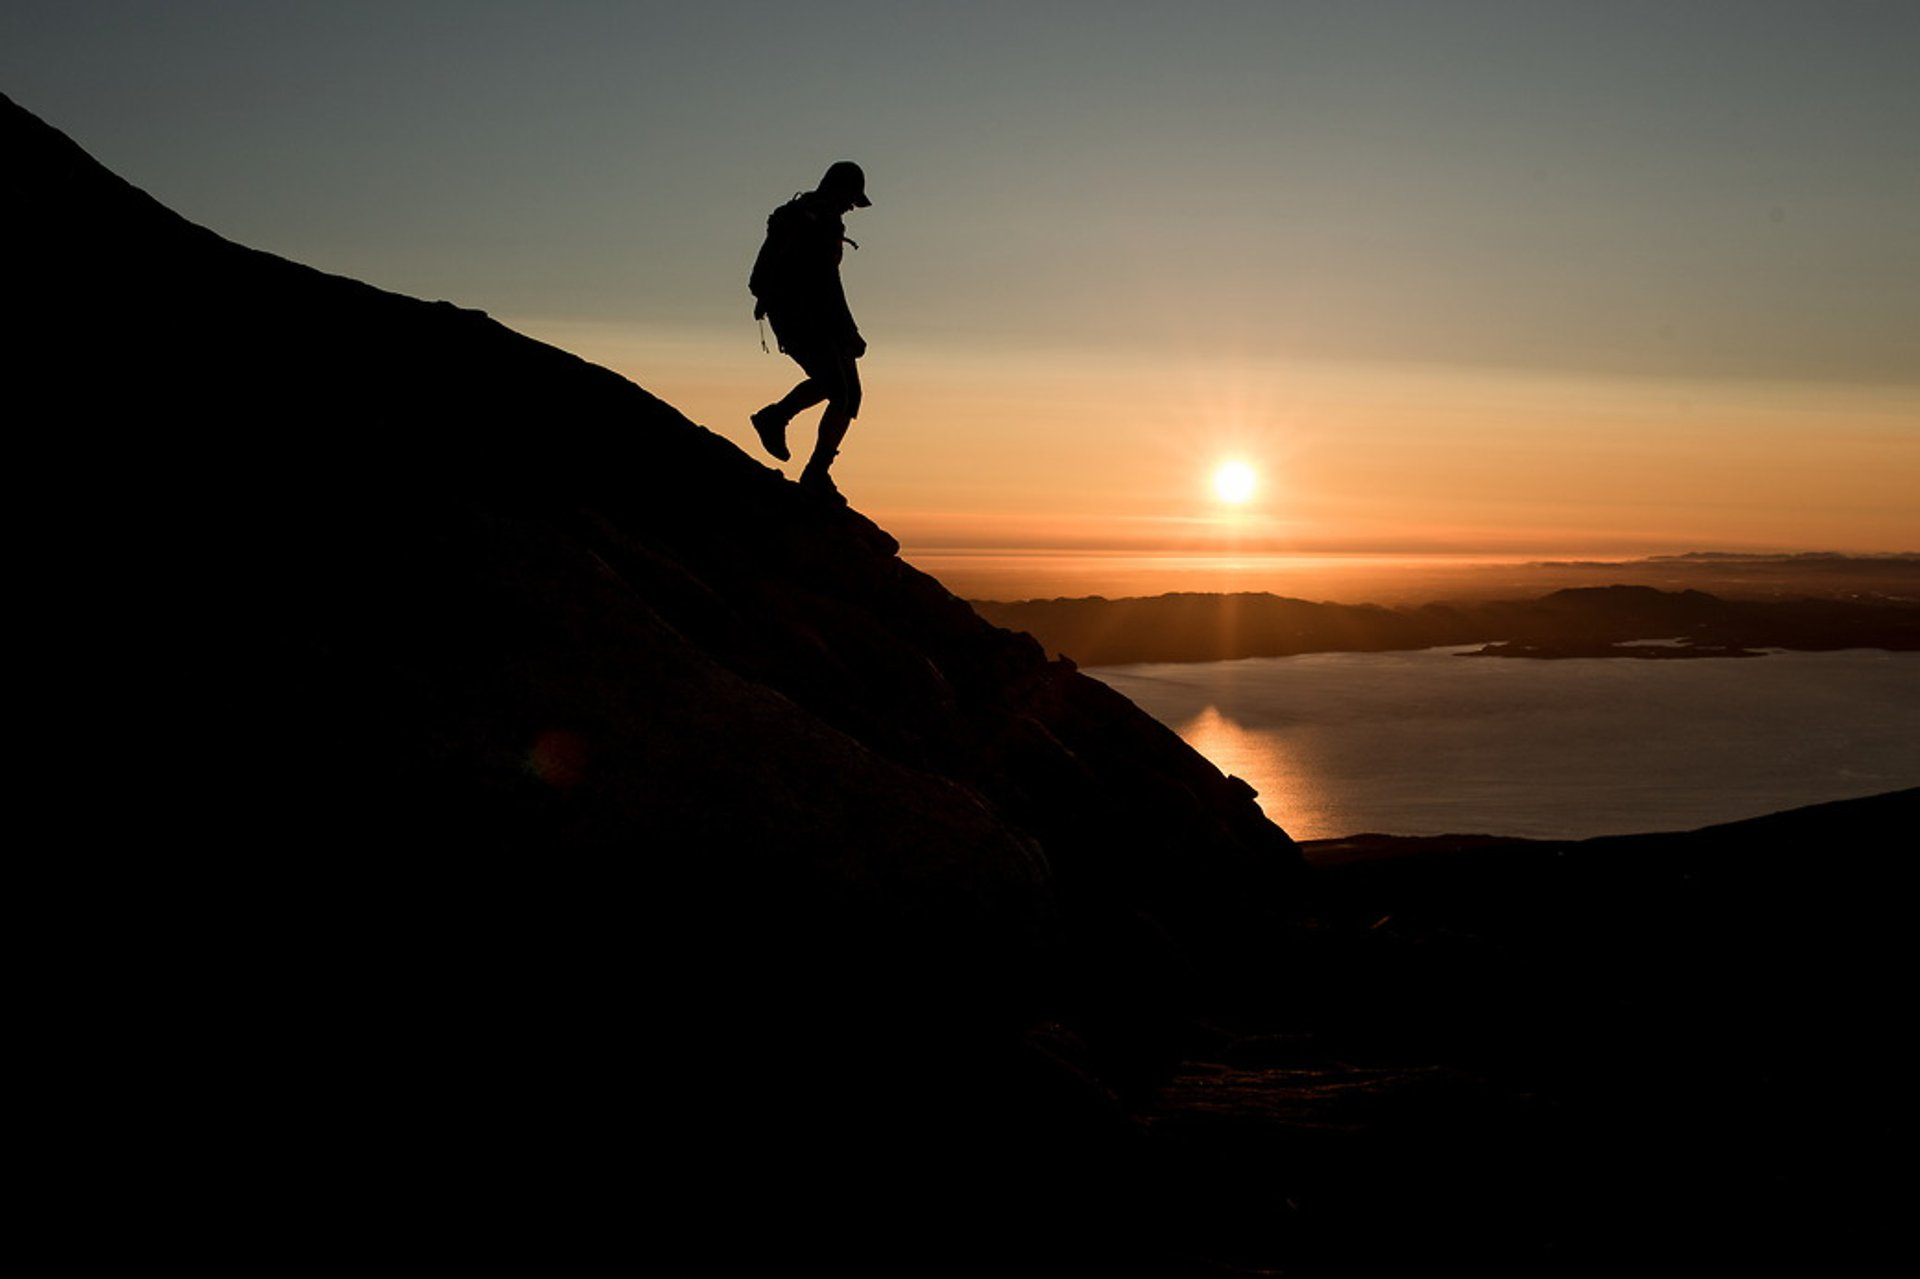 A hiker descending the mountain Ukkusissaq - Store Malene in the midnight sun outside Nuuk in Greenland 2020